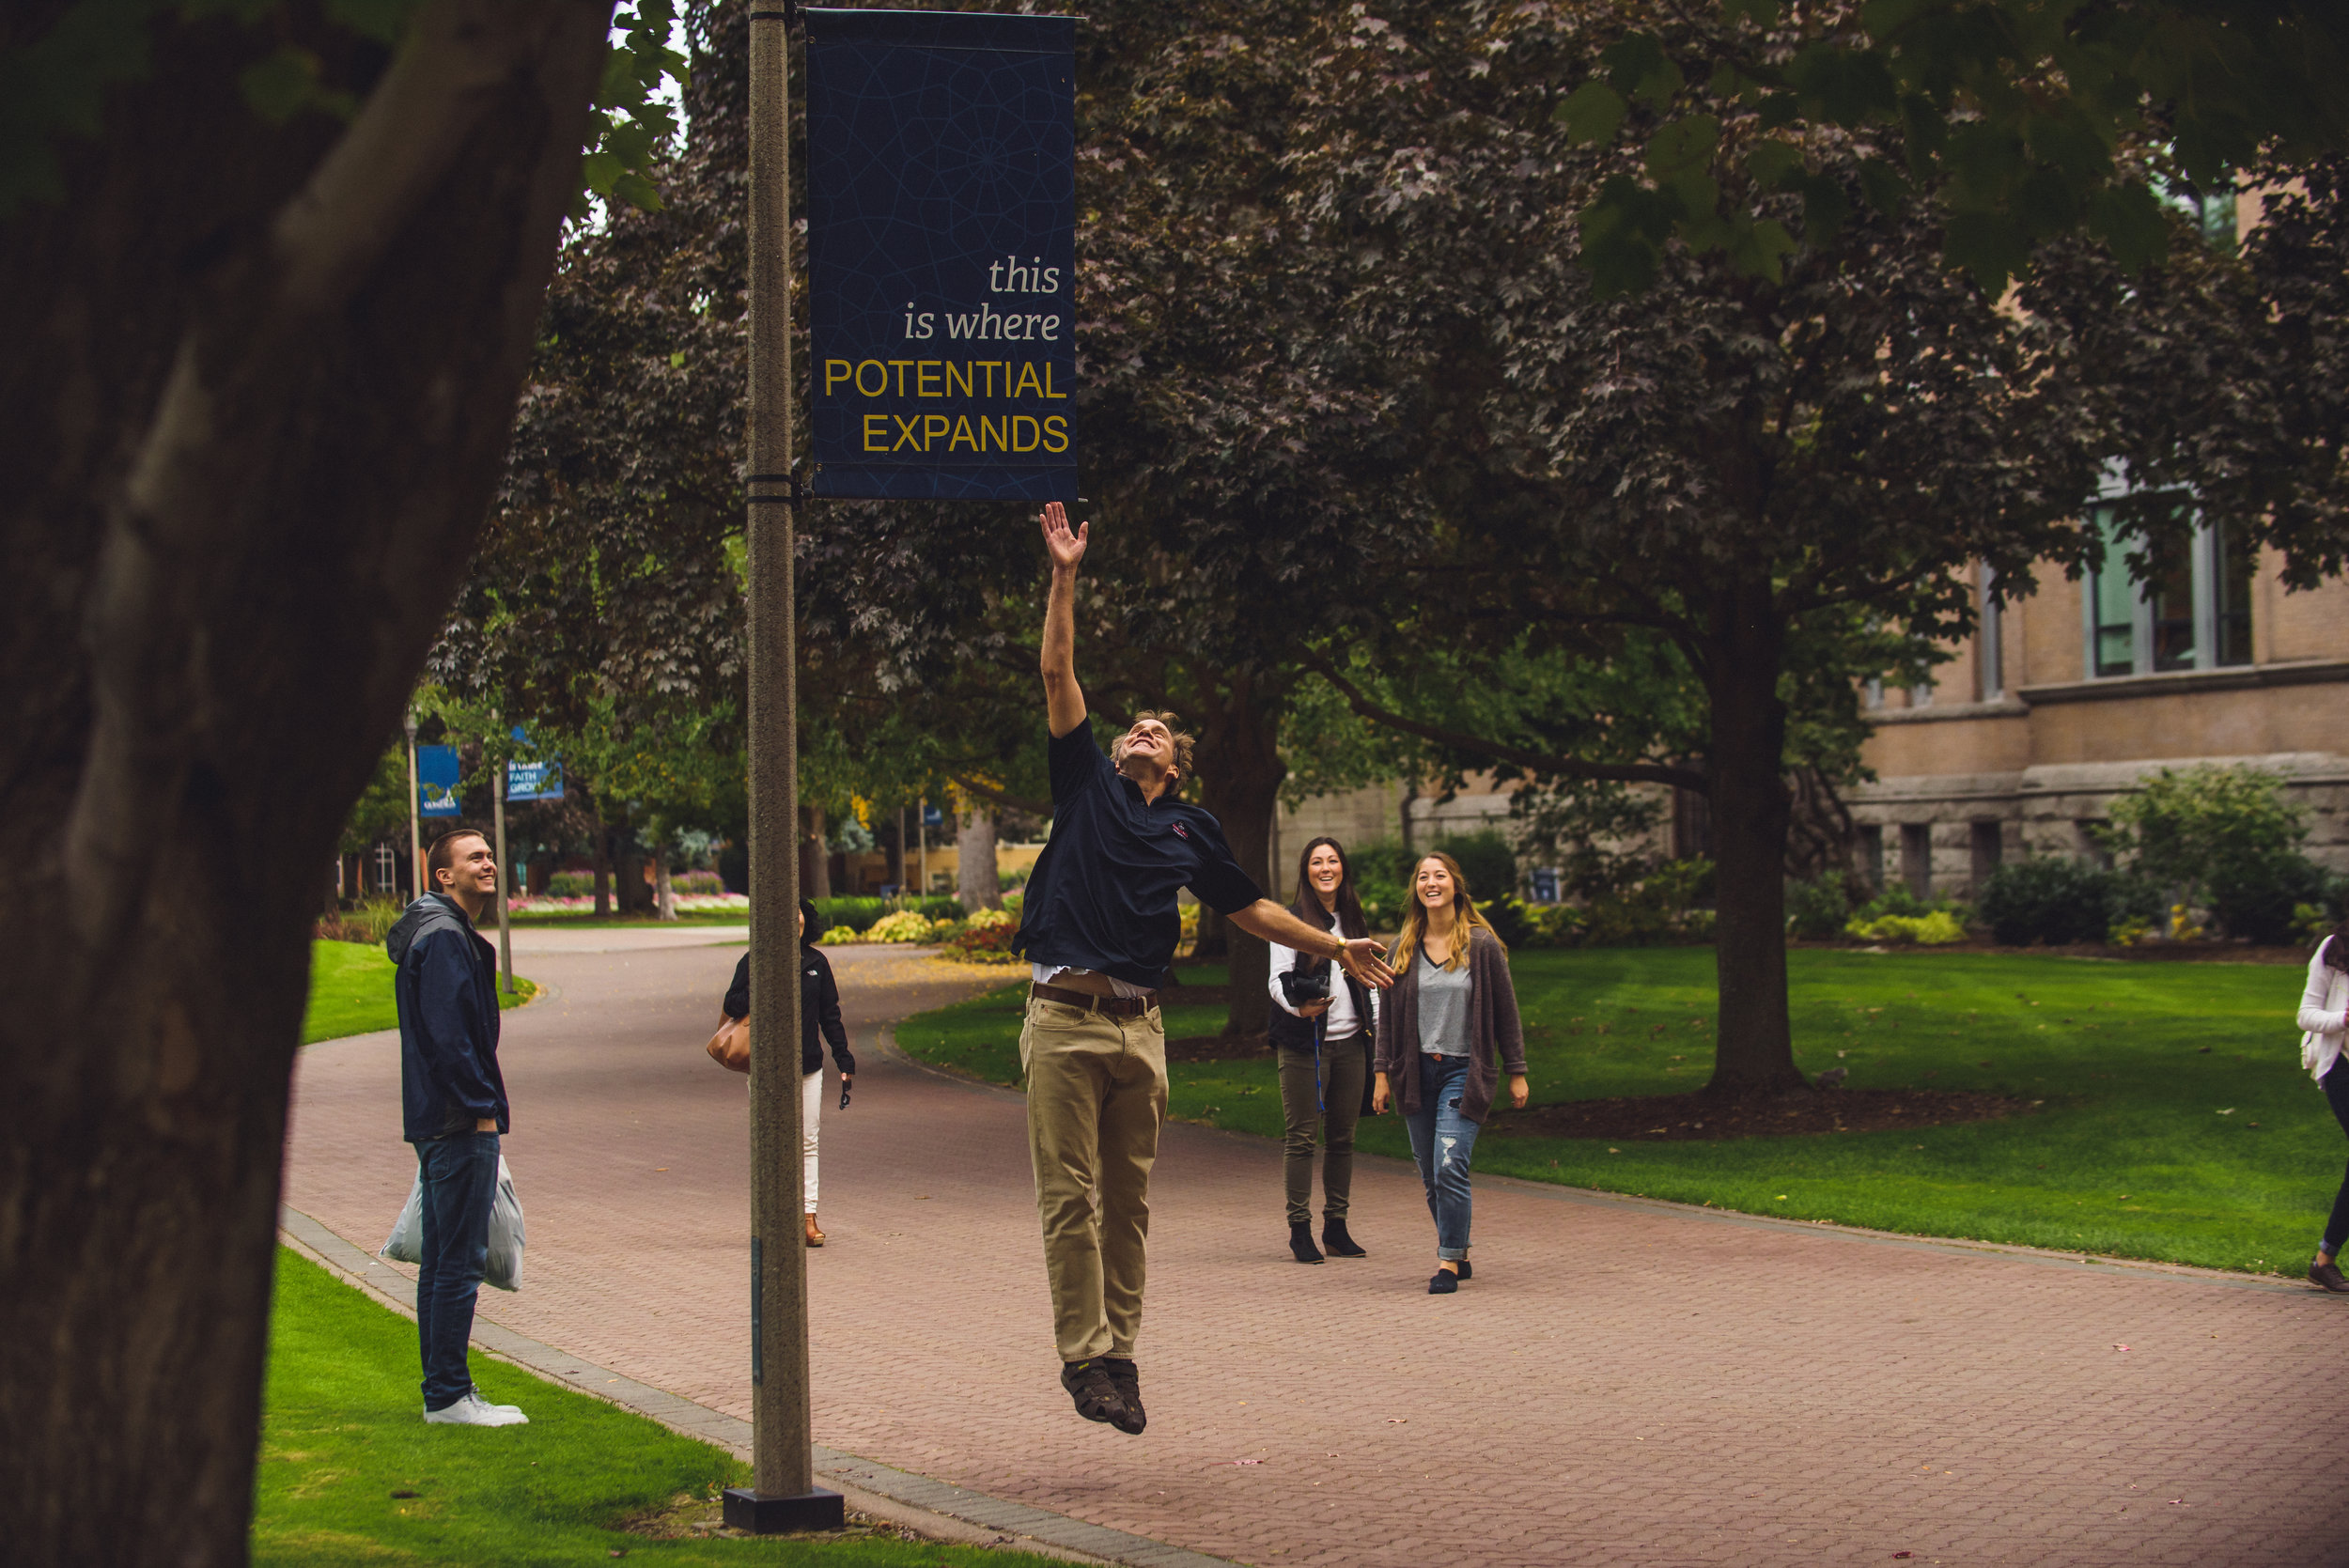 Donor support helps Gonzaga students reach new heights in their academic pursuits, faith formation, and in serving communities for the good of all (photo courtesy of Gonzaga University)